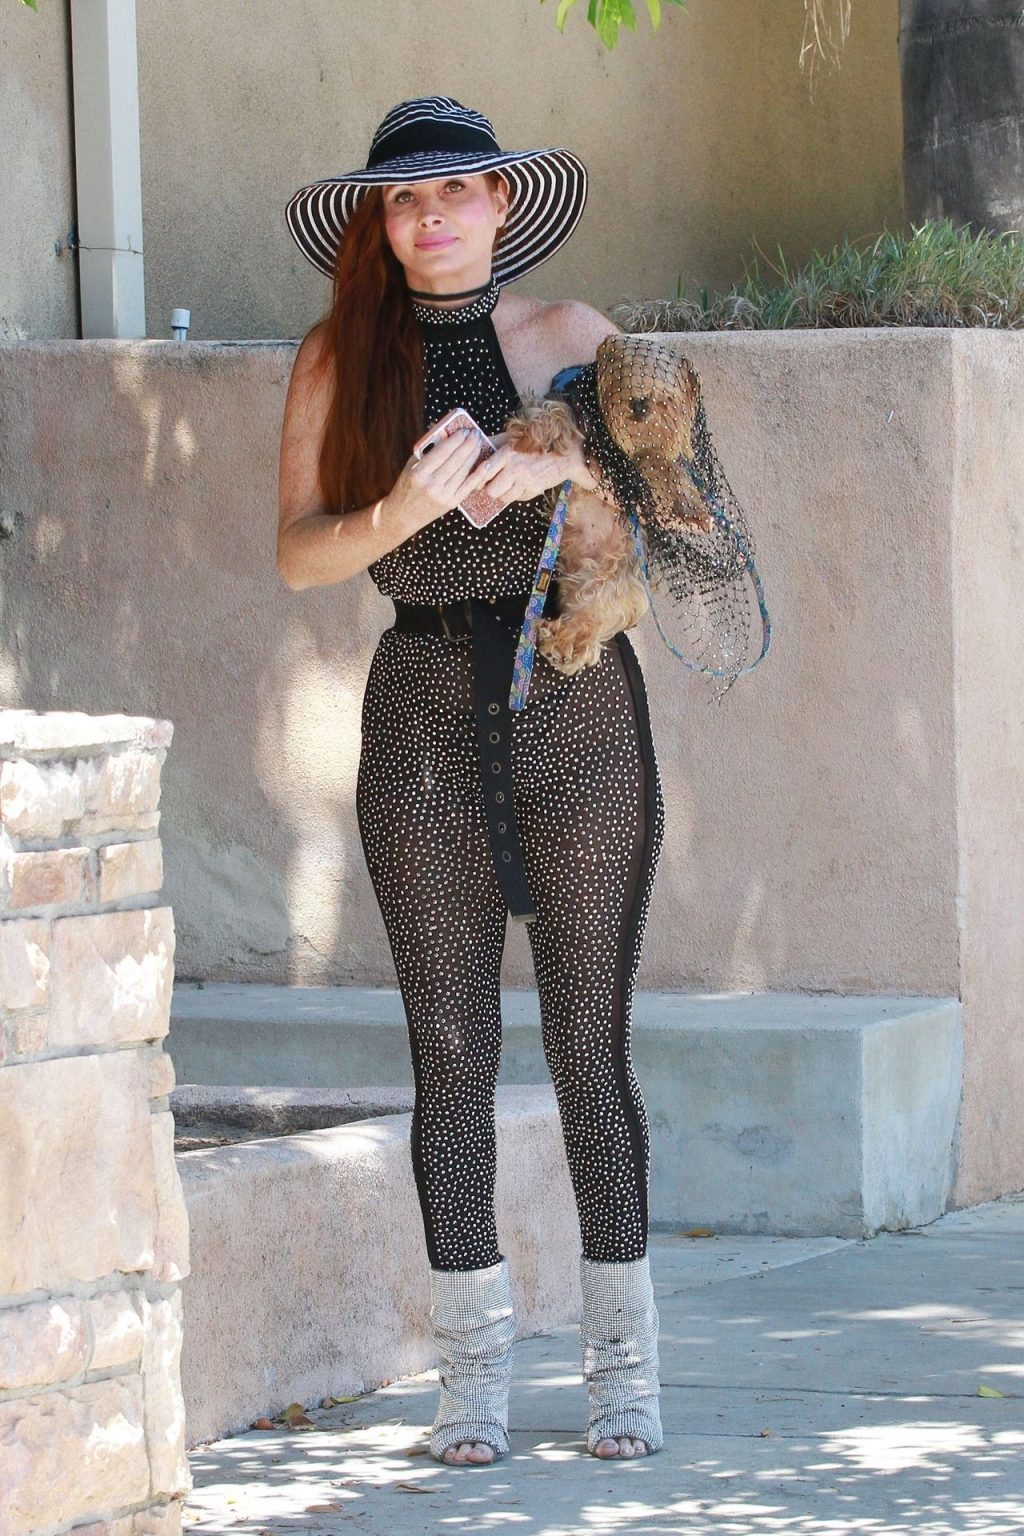 Phoebe Price Shows Off Her Boobs and Butt in a See Through Outfit (44 Photos)